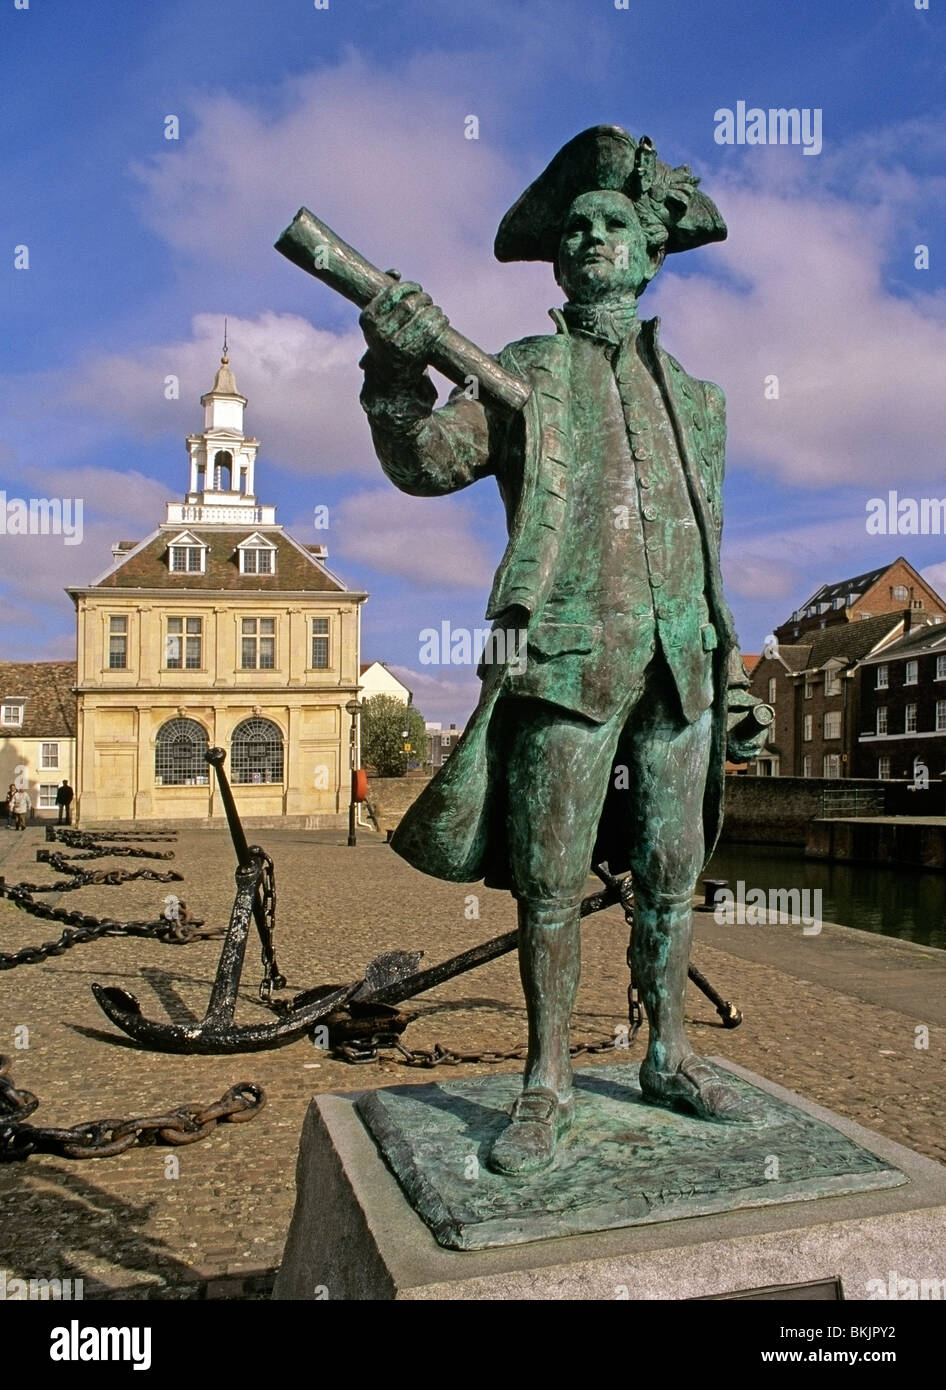 Statue of Captain George Vancouver on Purfleet Quay Kings Lynn - Stock Image